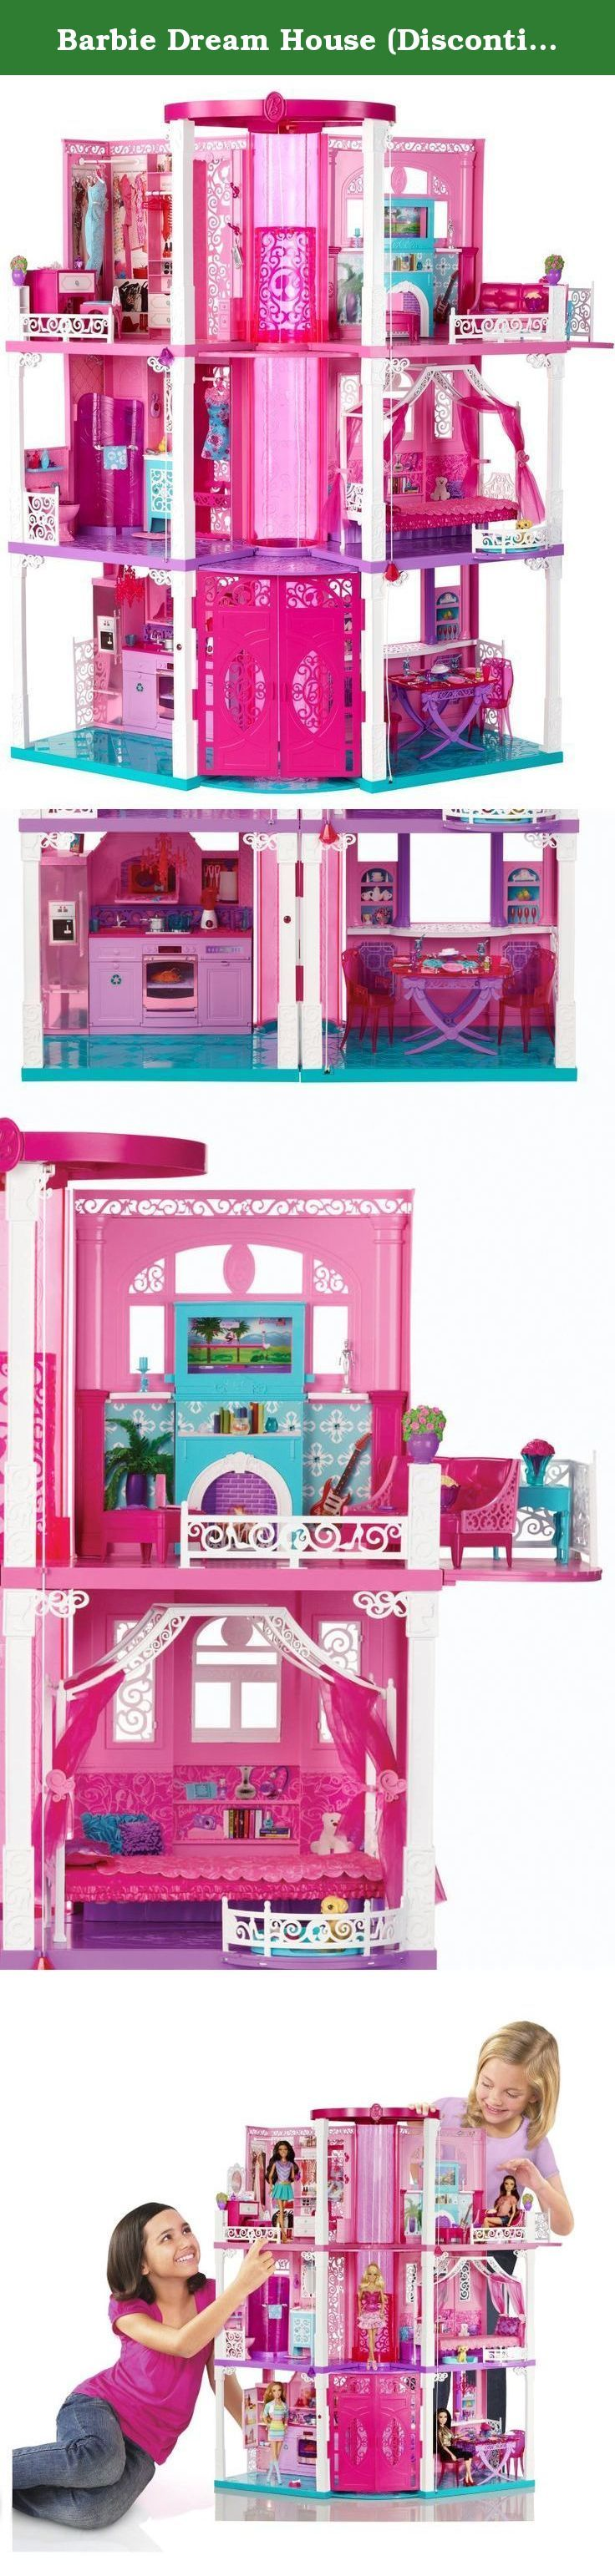 17 Best Ideas About Barbie Dream House Games On Pinterest